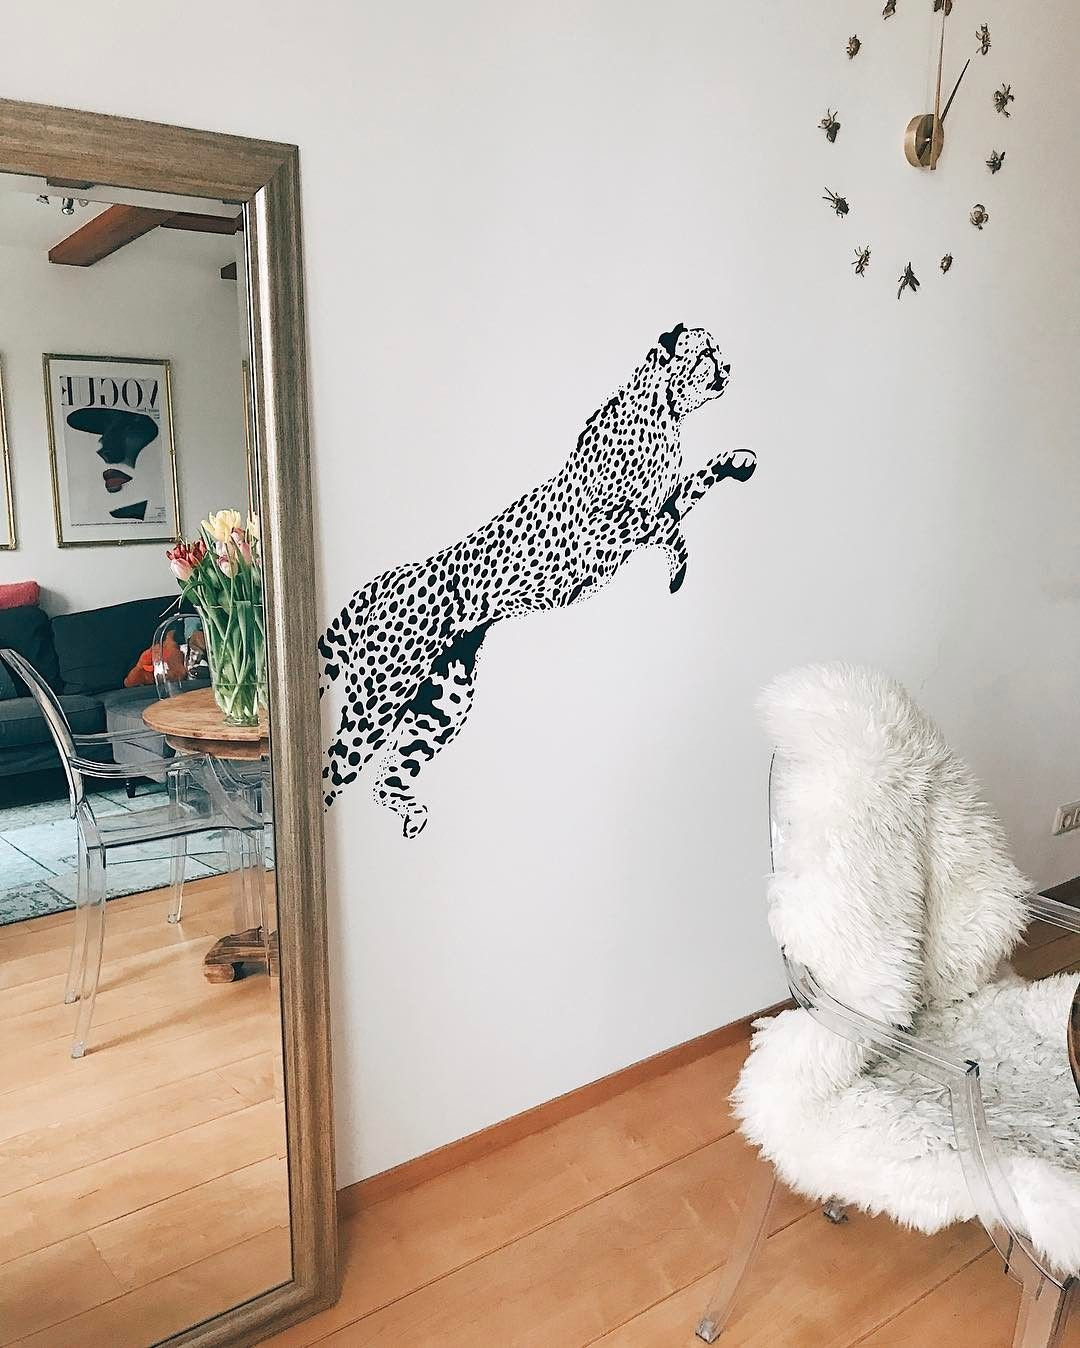 Leopard sticker from Pixers Source @floortjeloves https://www.instagram.com/p/BQ7v7WNAz3W/?taken-by=floortjeloves